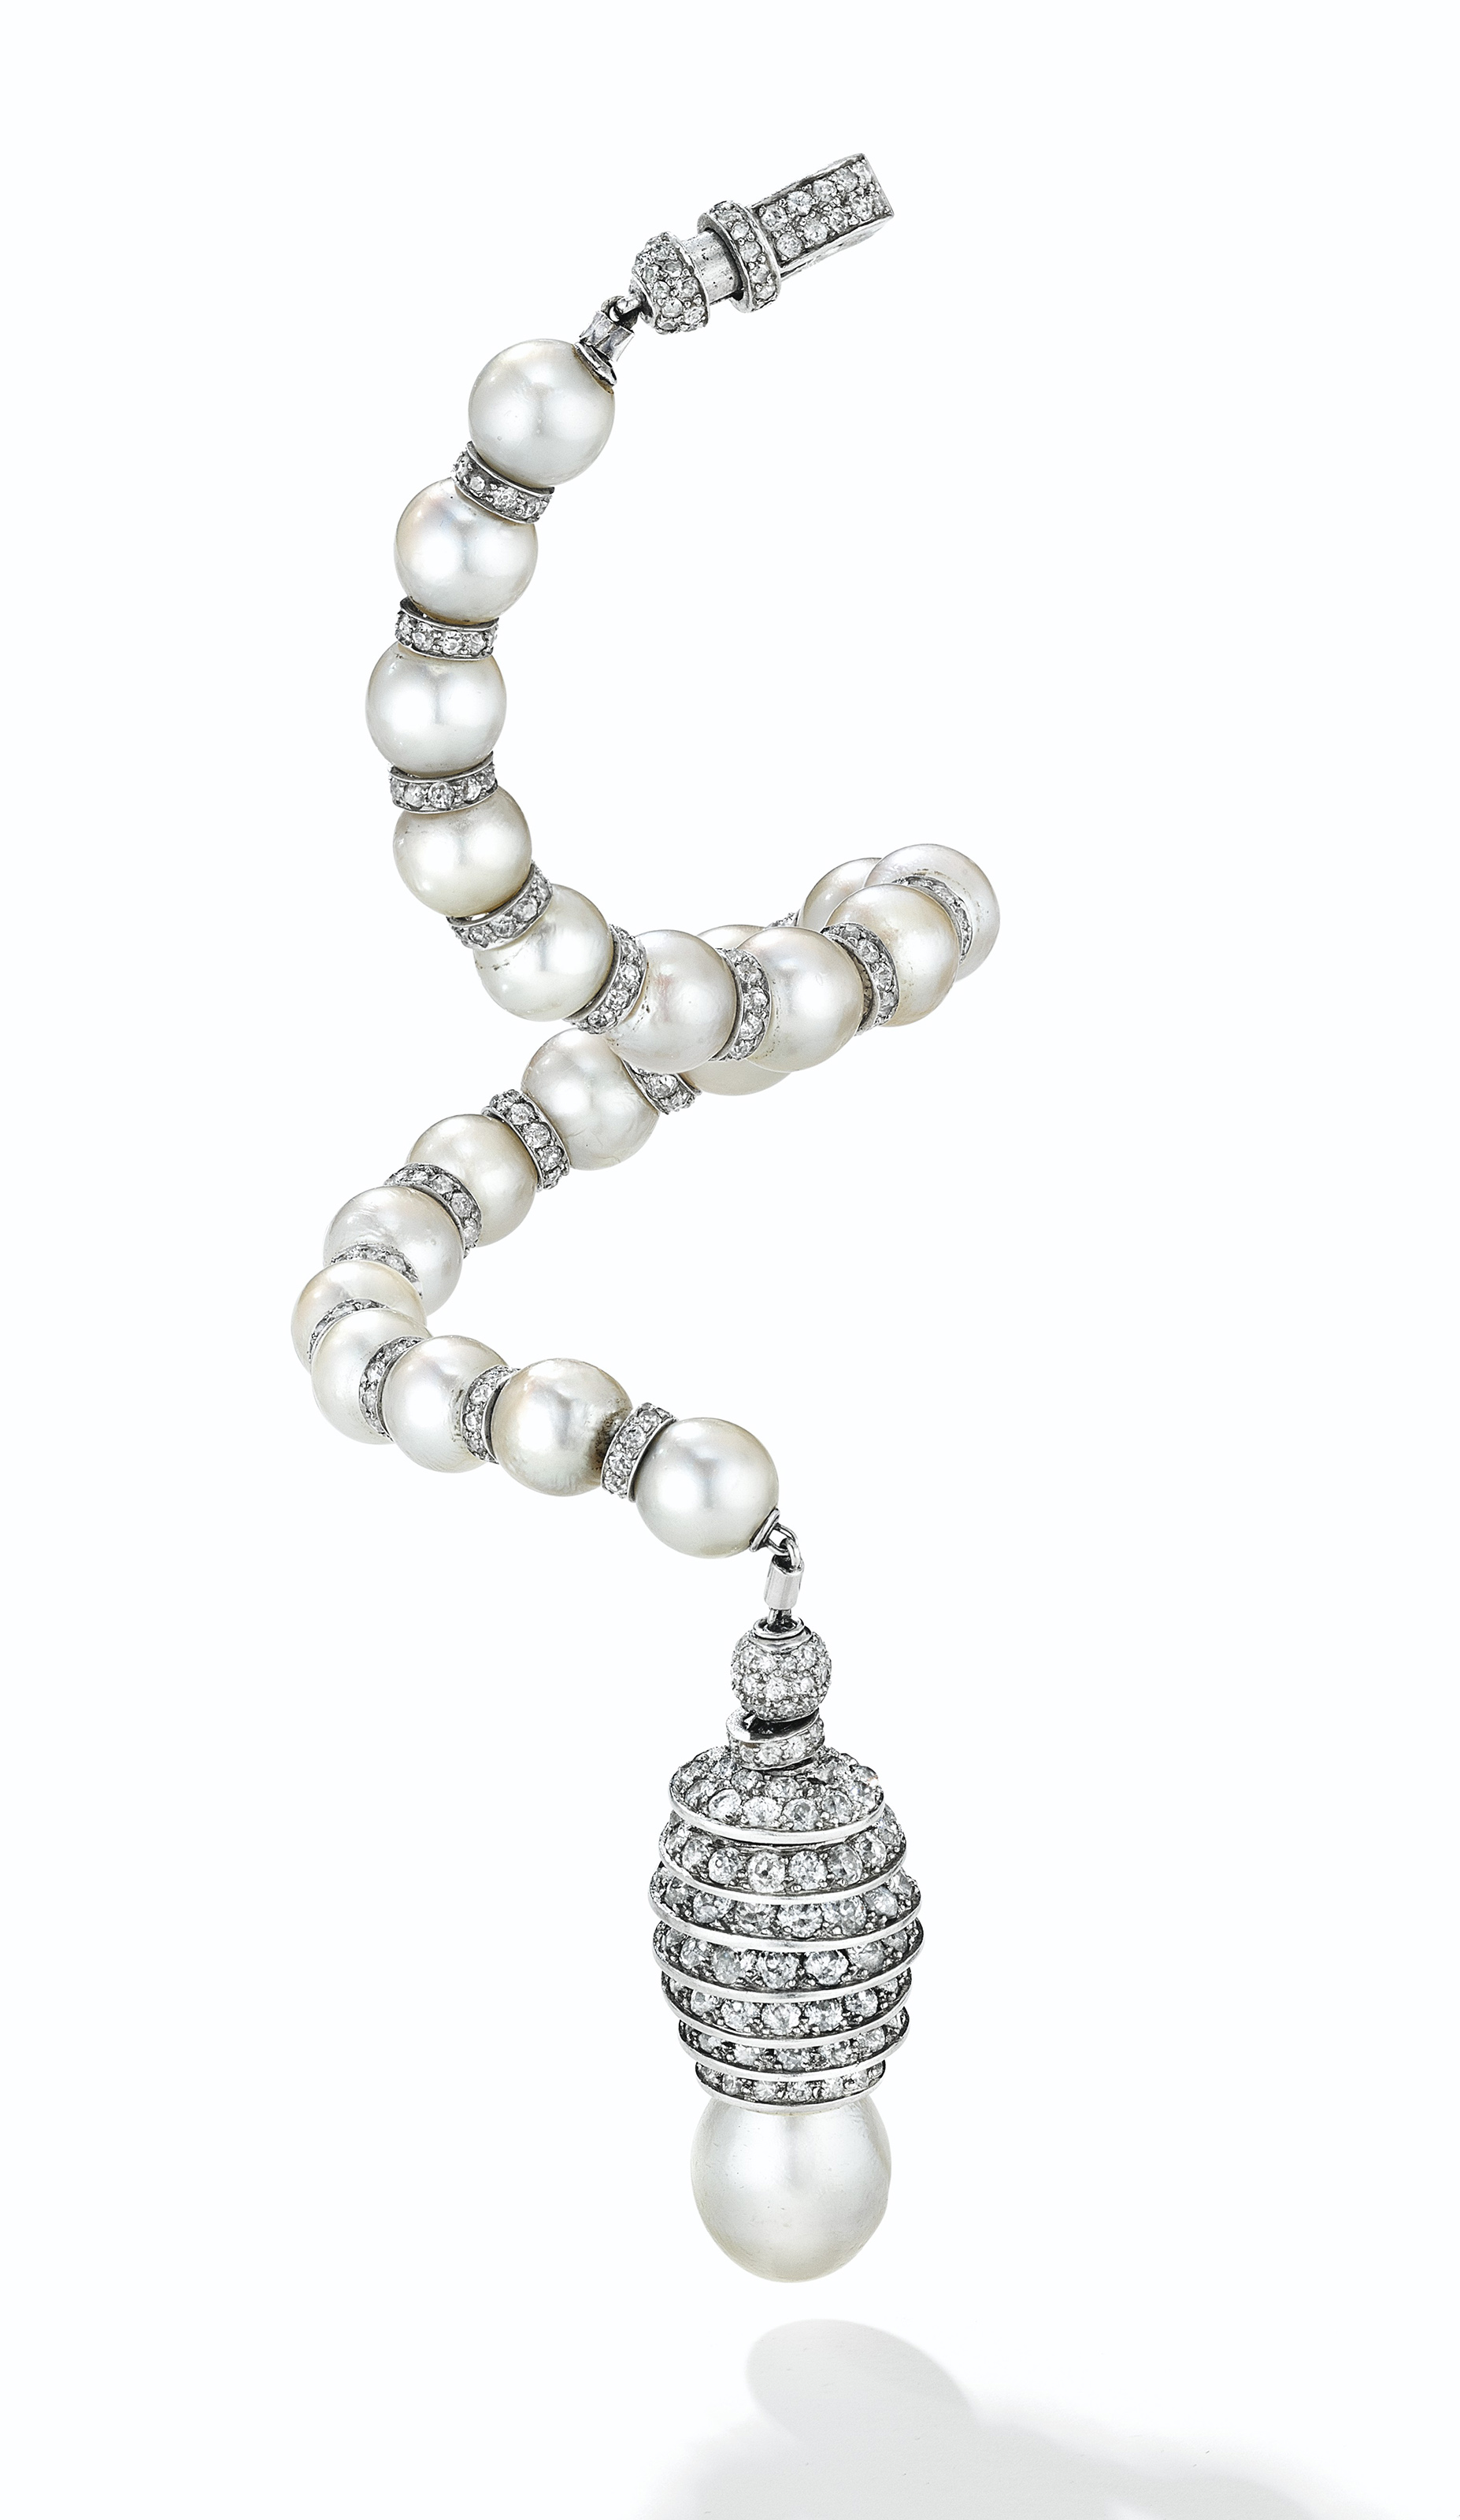 AN ART DECO CULTURED PEARL AND